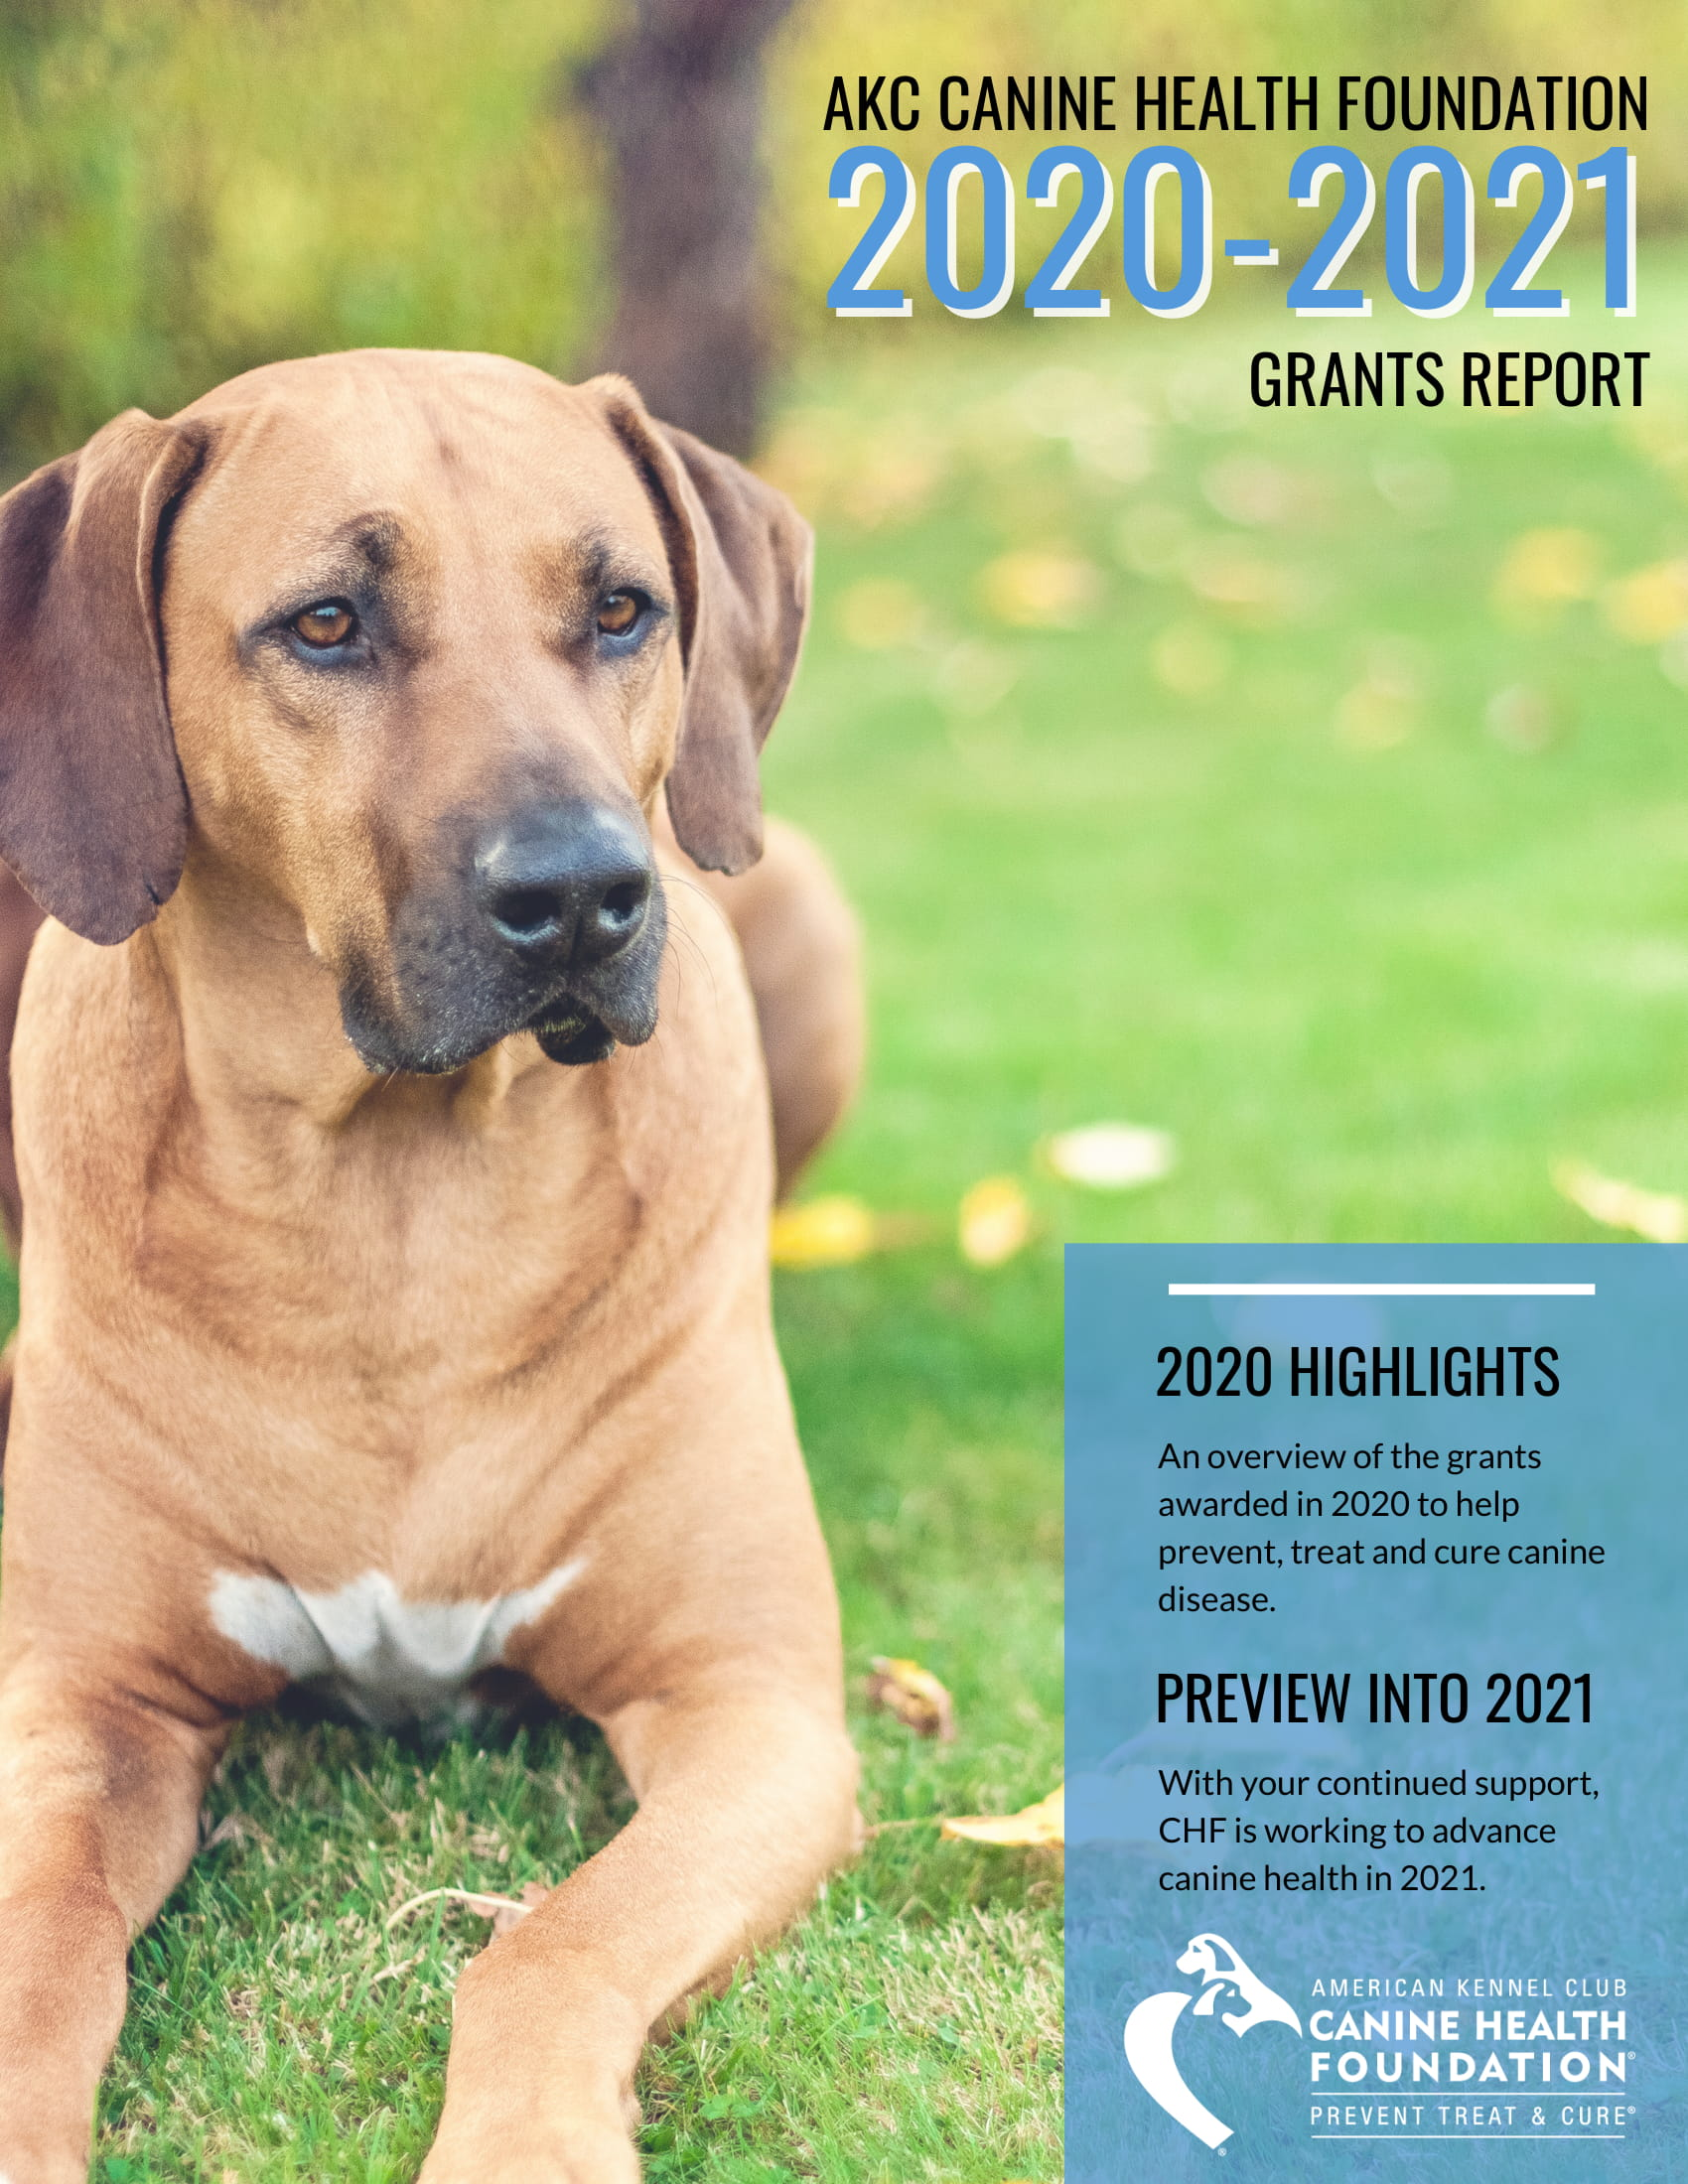 2020-2021 Grants Report cover